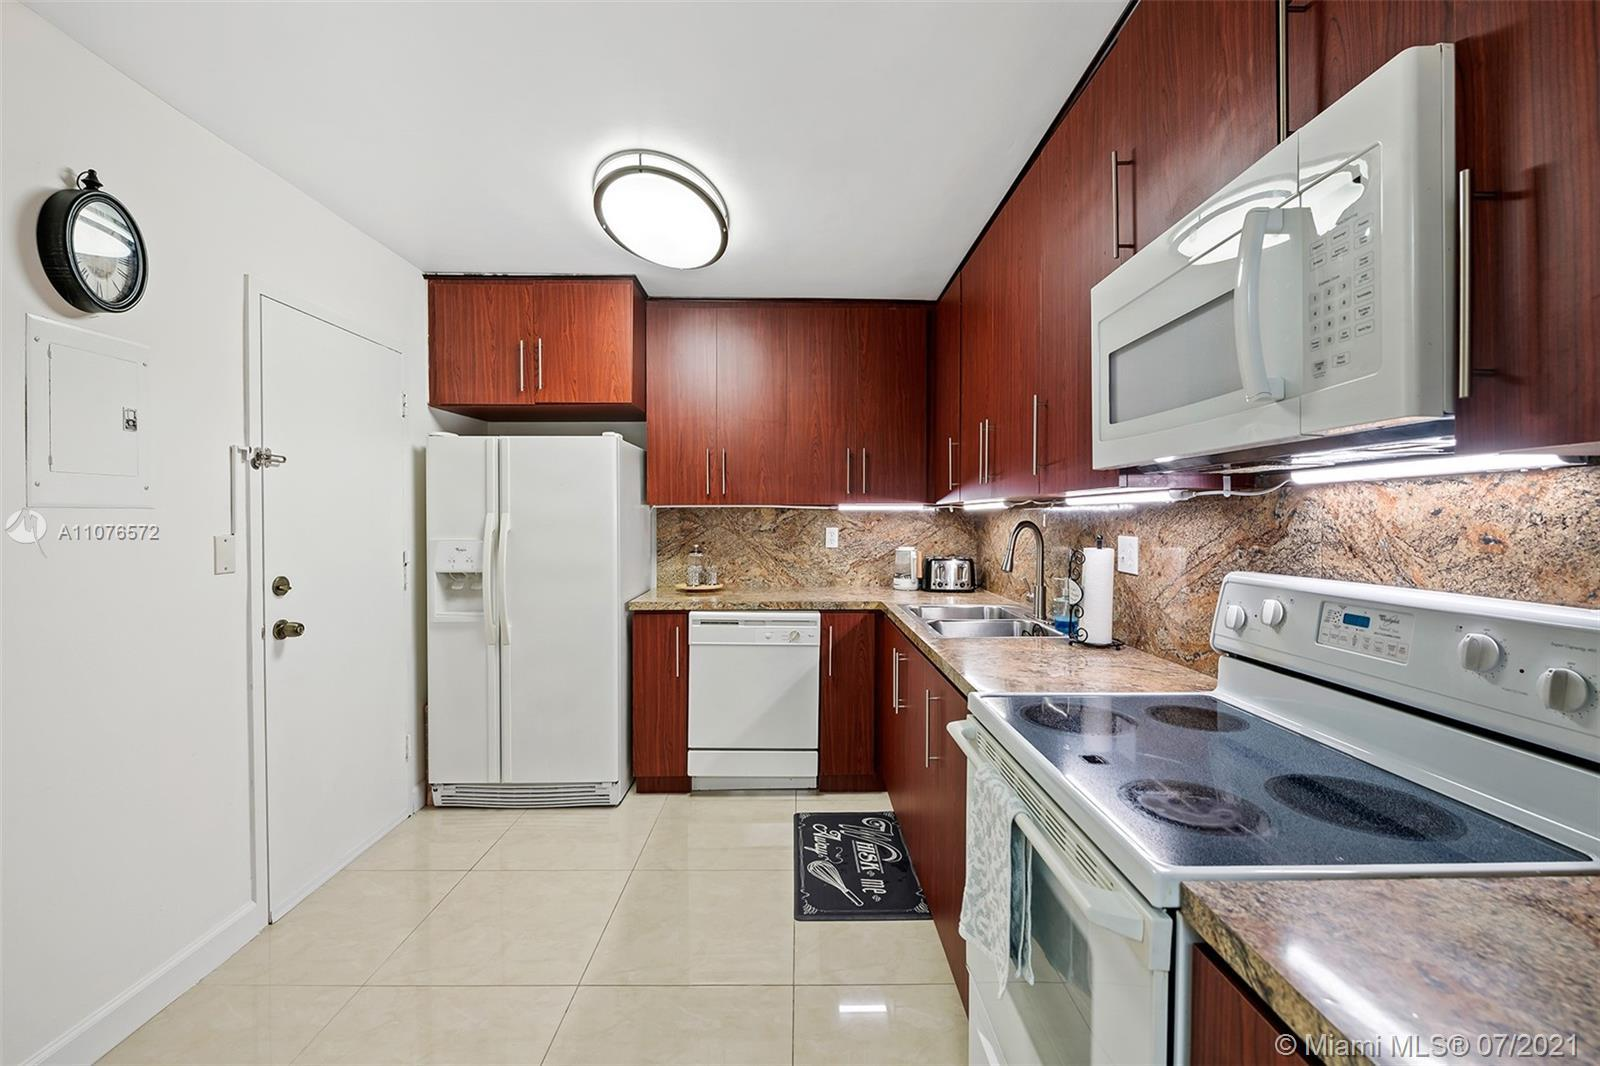 Get on the sand in no time with this spacious 2 BD/2 BA condo right in the heart of Hallandale Beach